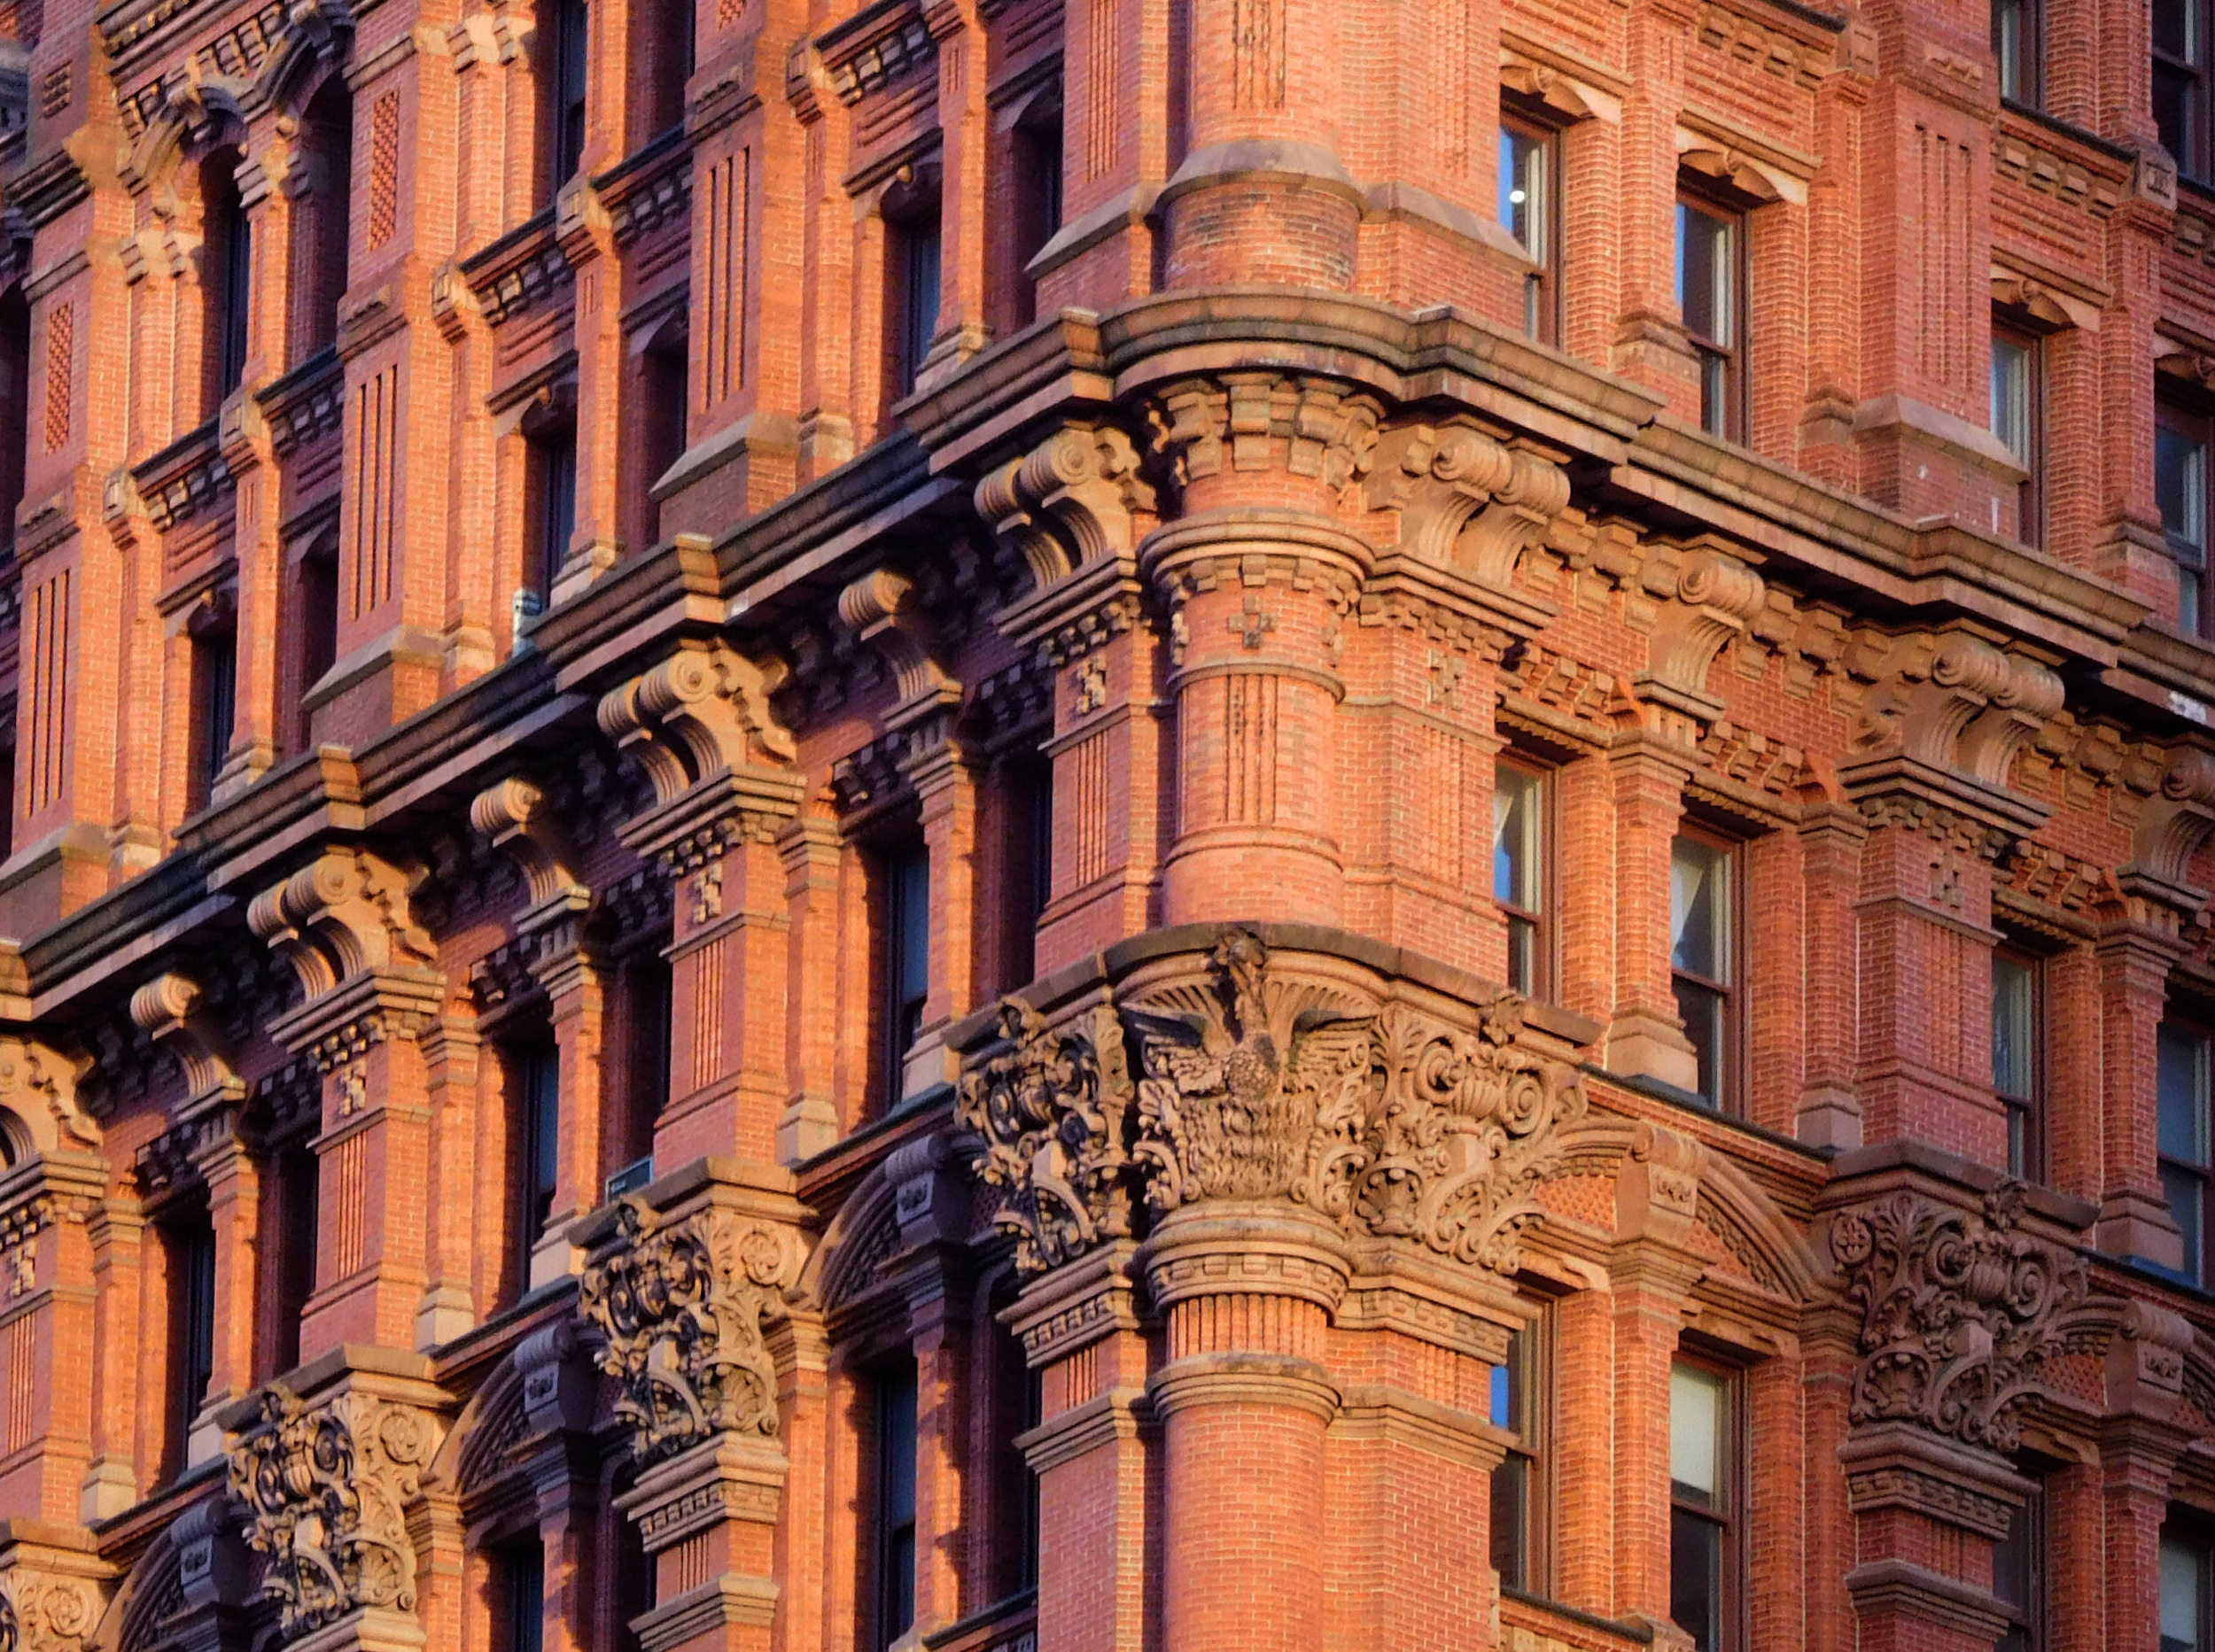 Potters Building, 38 Park Row by Norris Garshom Starkweather – 1886